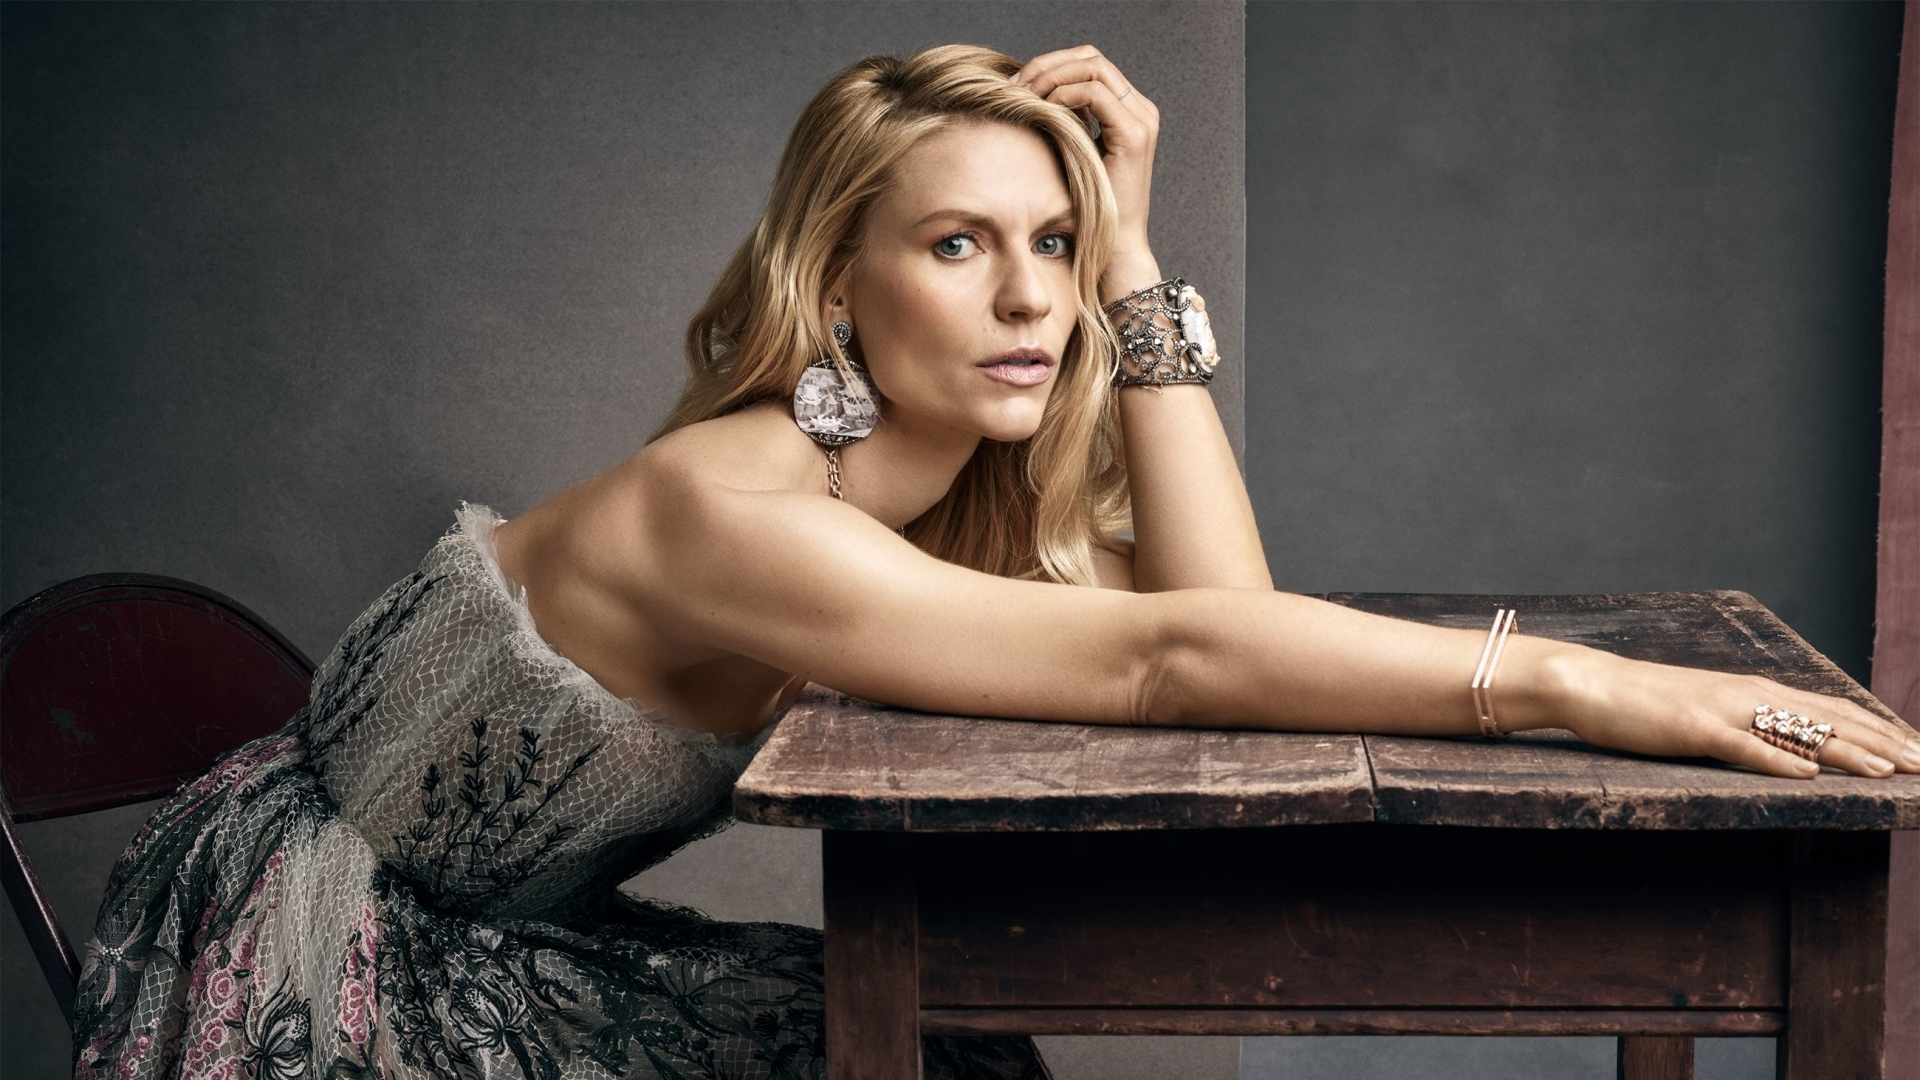 claire danes 2020 68944 1920x1080 Id like to inform about Plentyoffish okcupid free sites that are dating